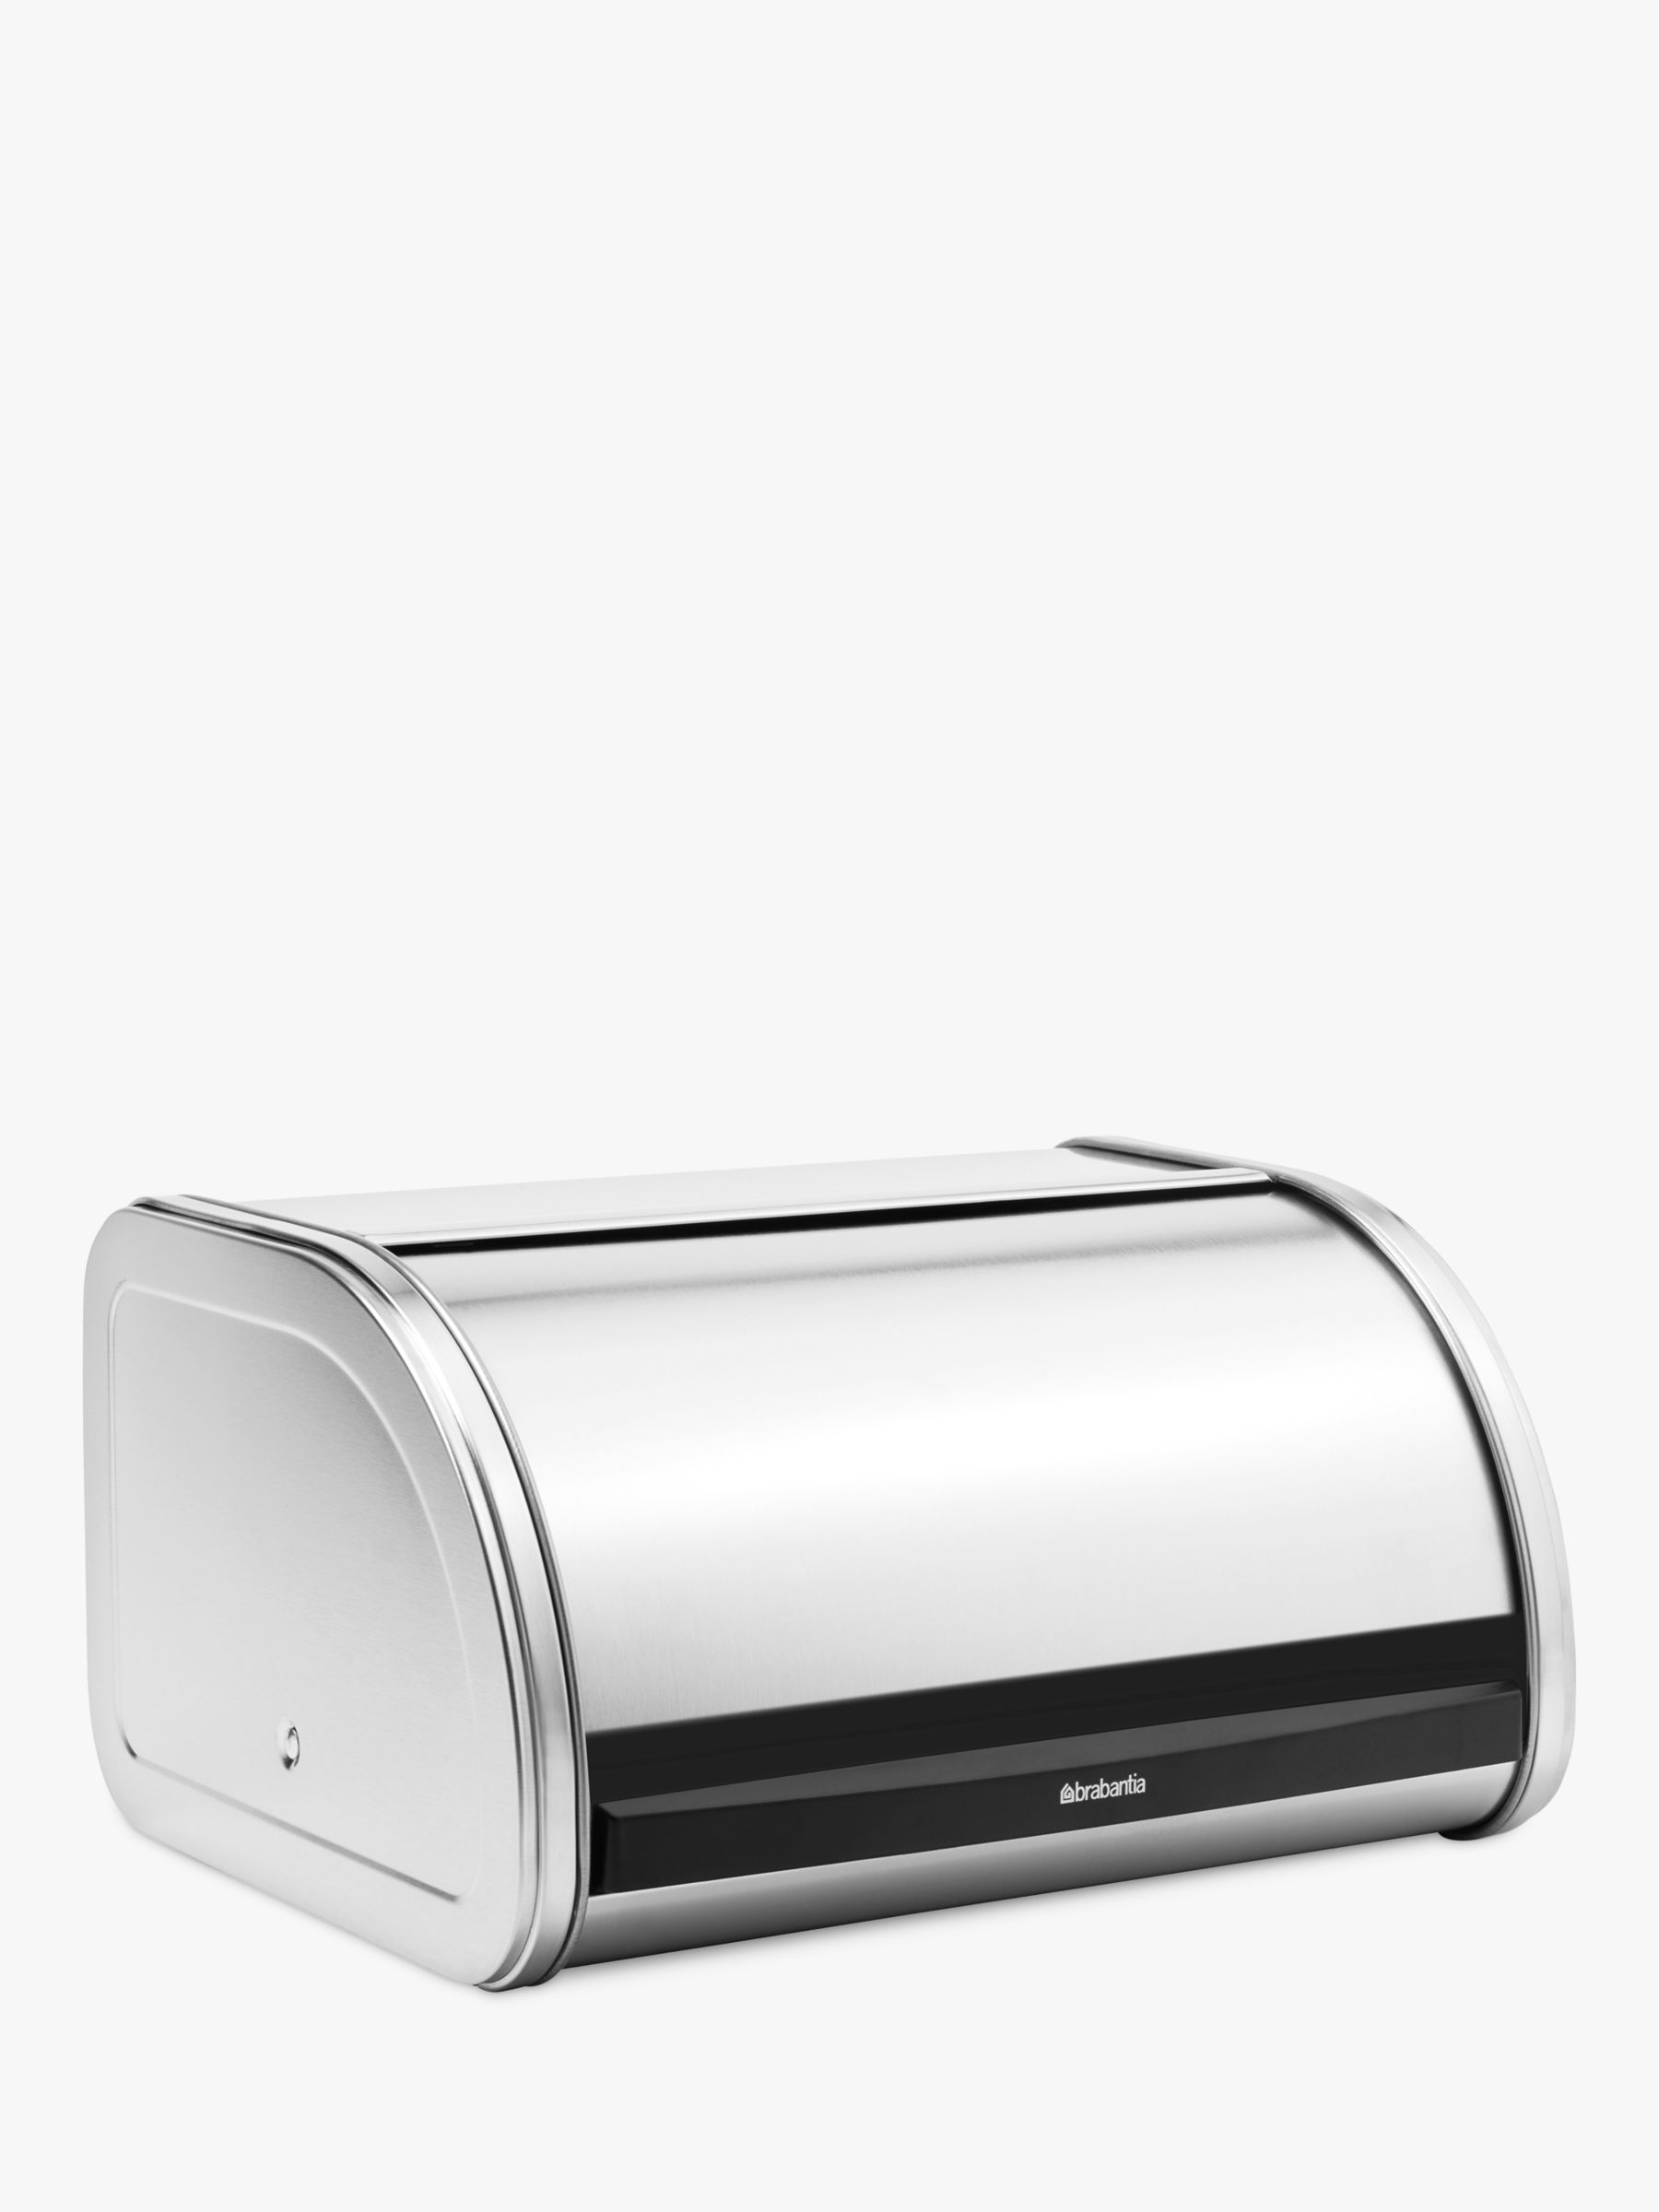 Brabantia Brabantia Roll Top Bread Bin, Medium